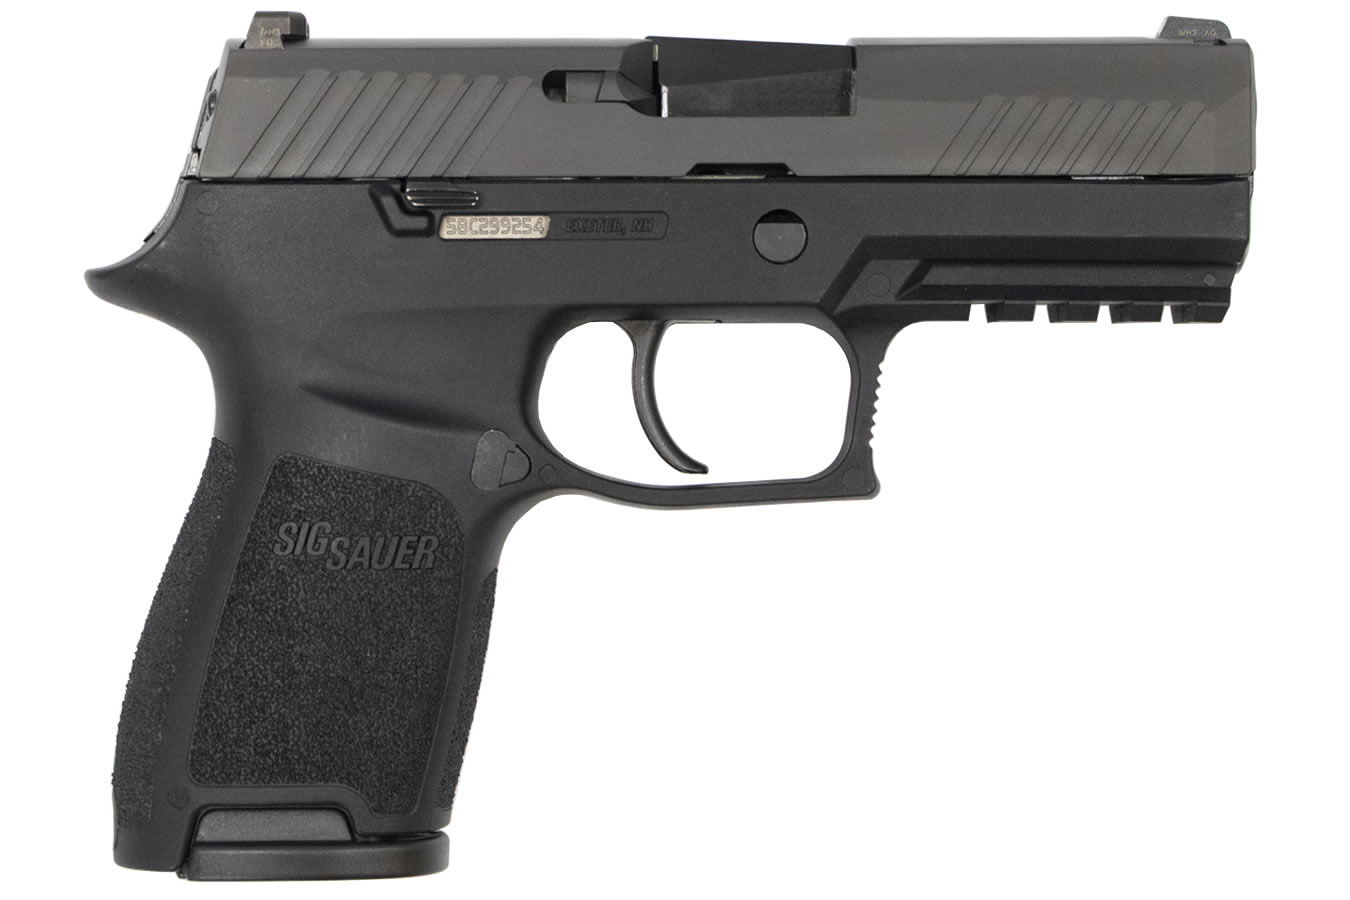 P320 9MM COMPACT WITH NIGHT SIGHTS